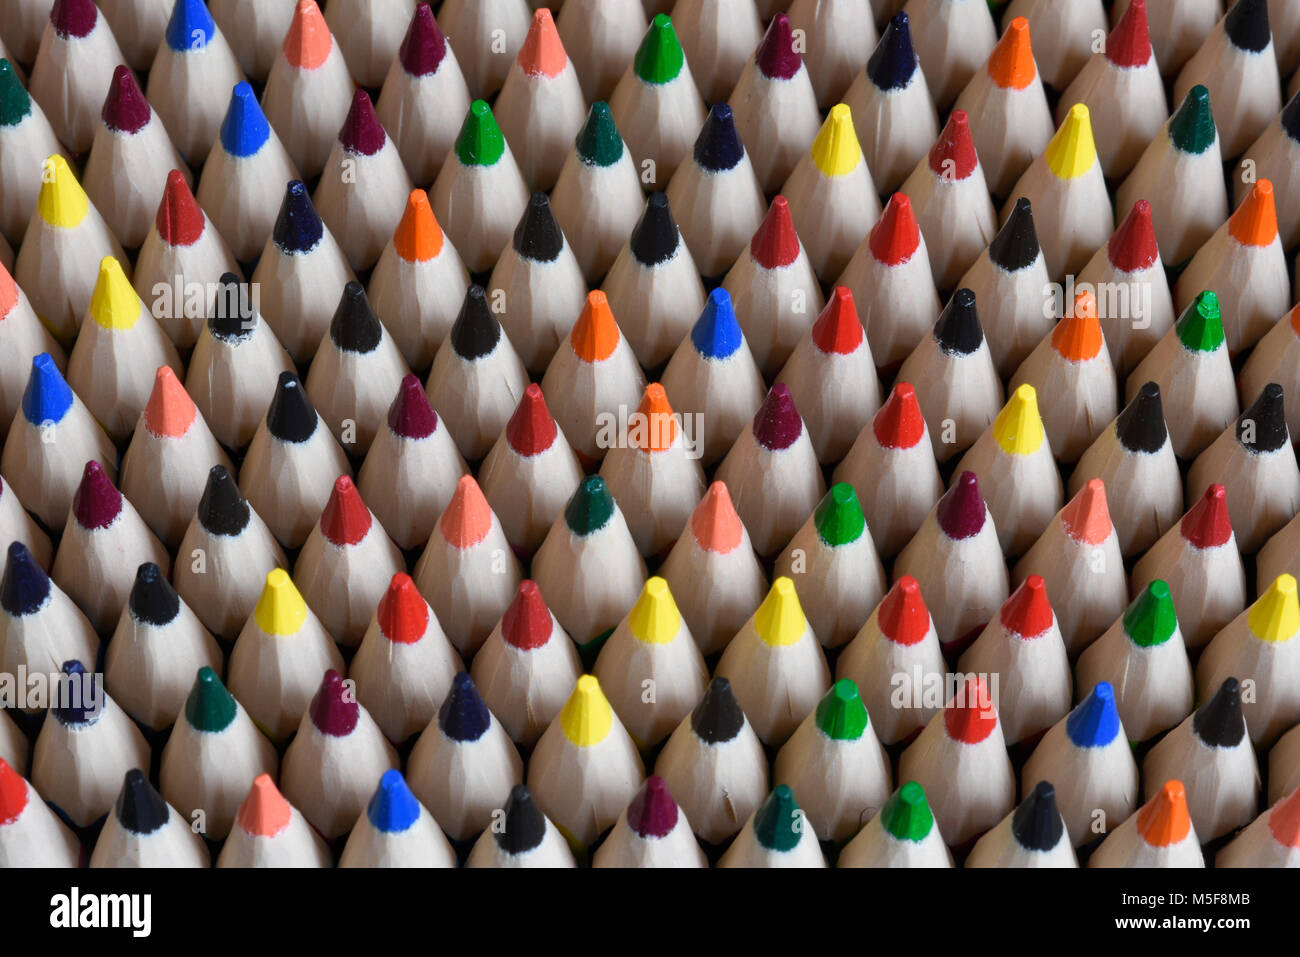 Coloured pencil tips - Stock Image